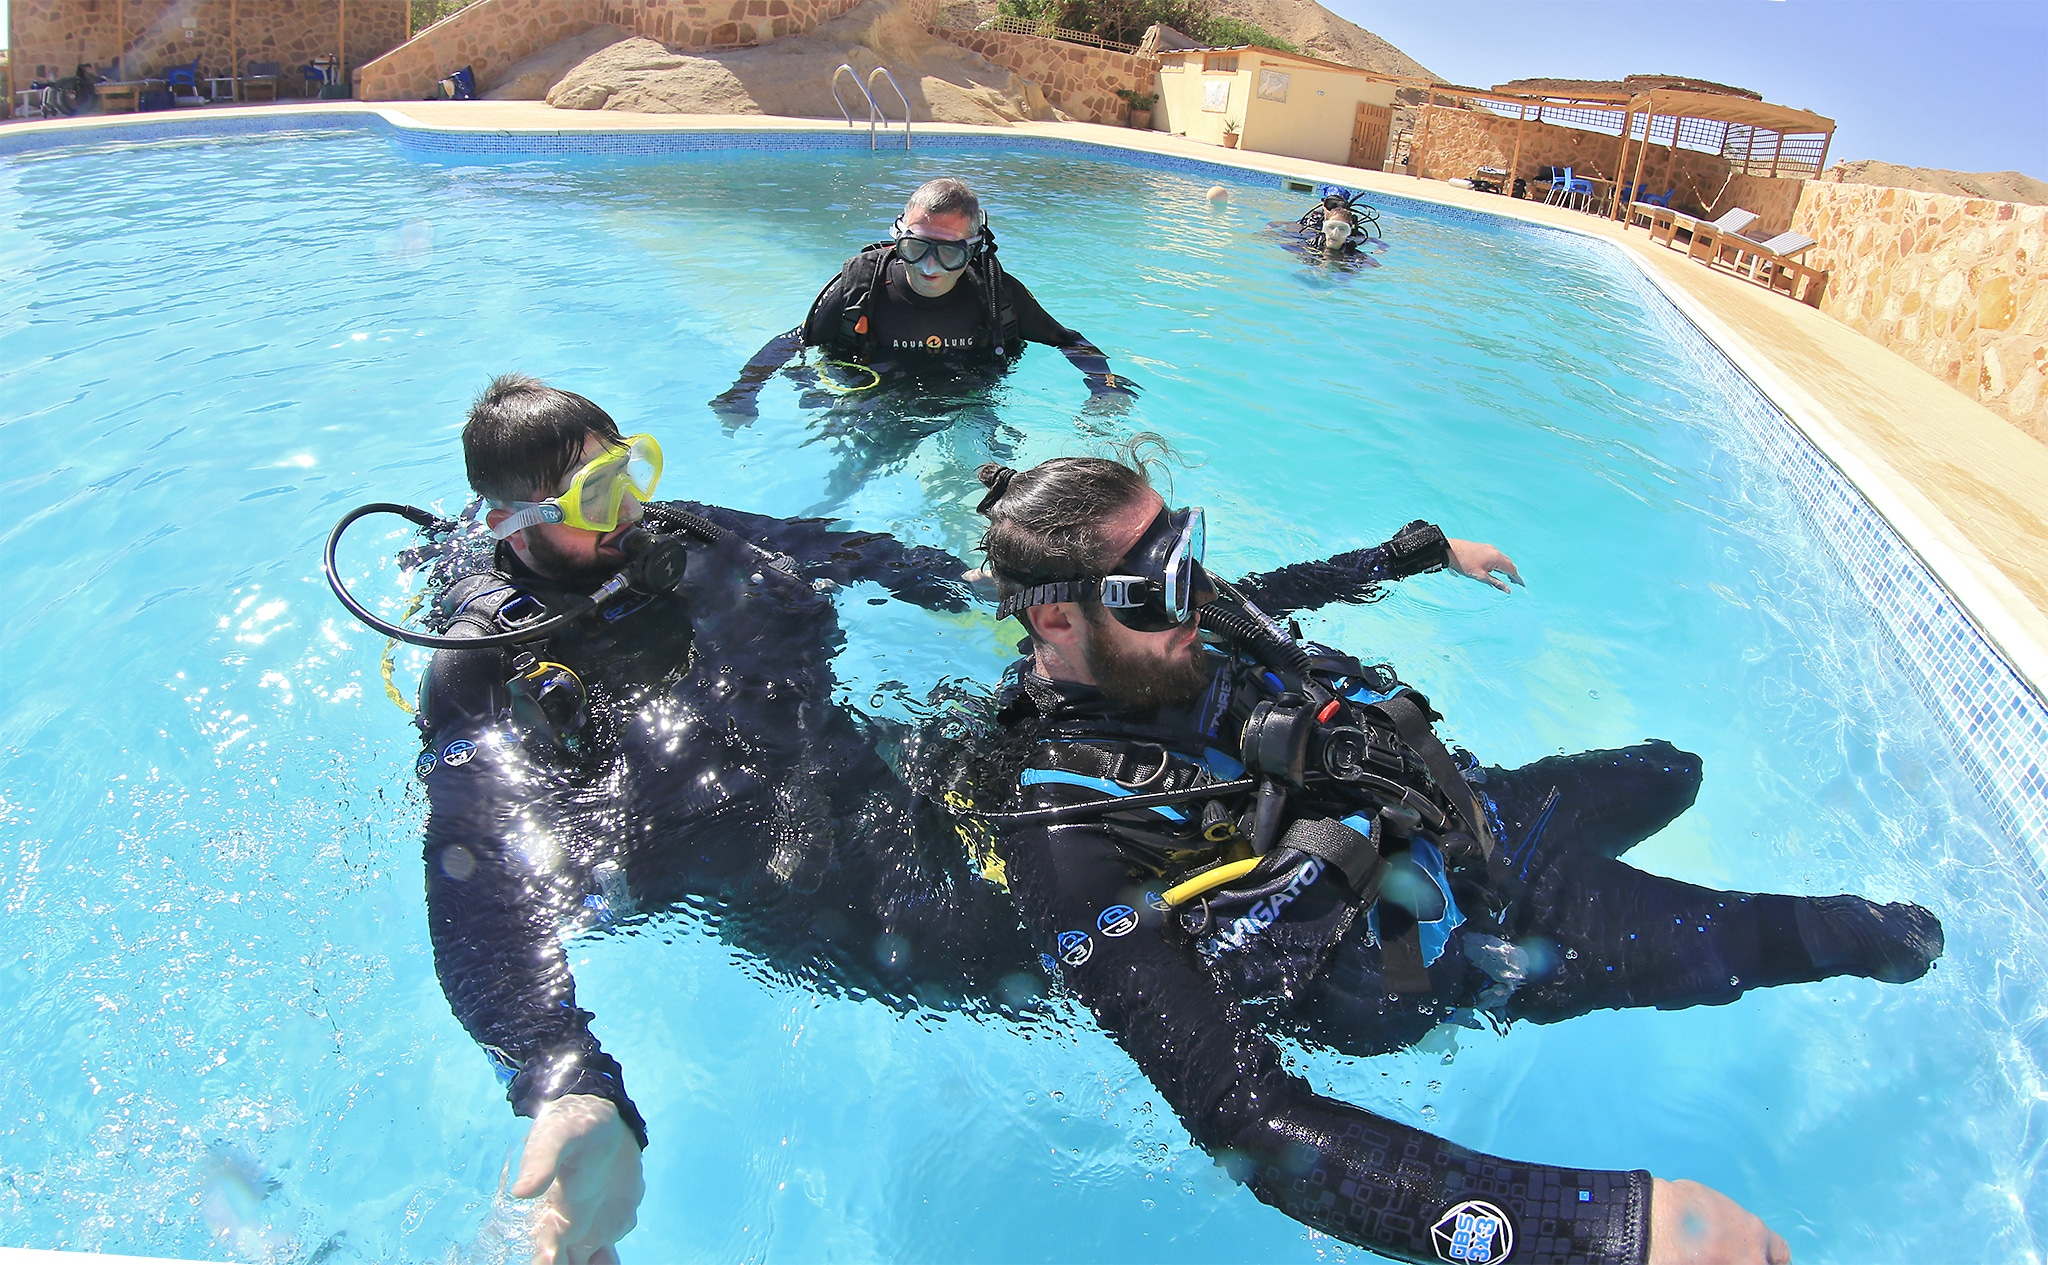 the physics of scuba diving Get this from a library the physics of scuba diving [marlow anderson] -- while exploring the wonders of scuba diving, this educational account teaches the scientific and mathematical principles associated with the sport.